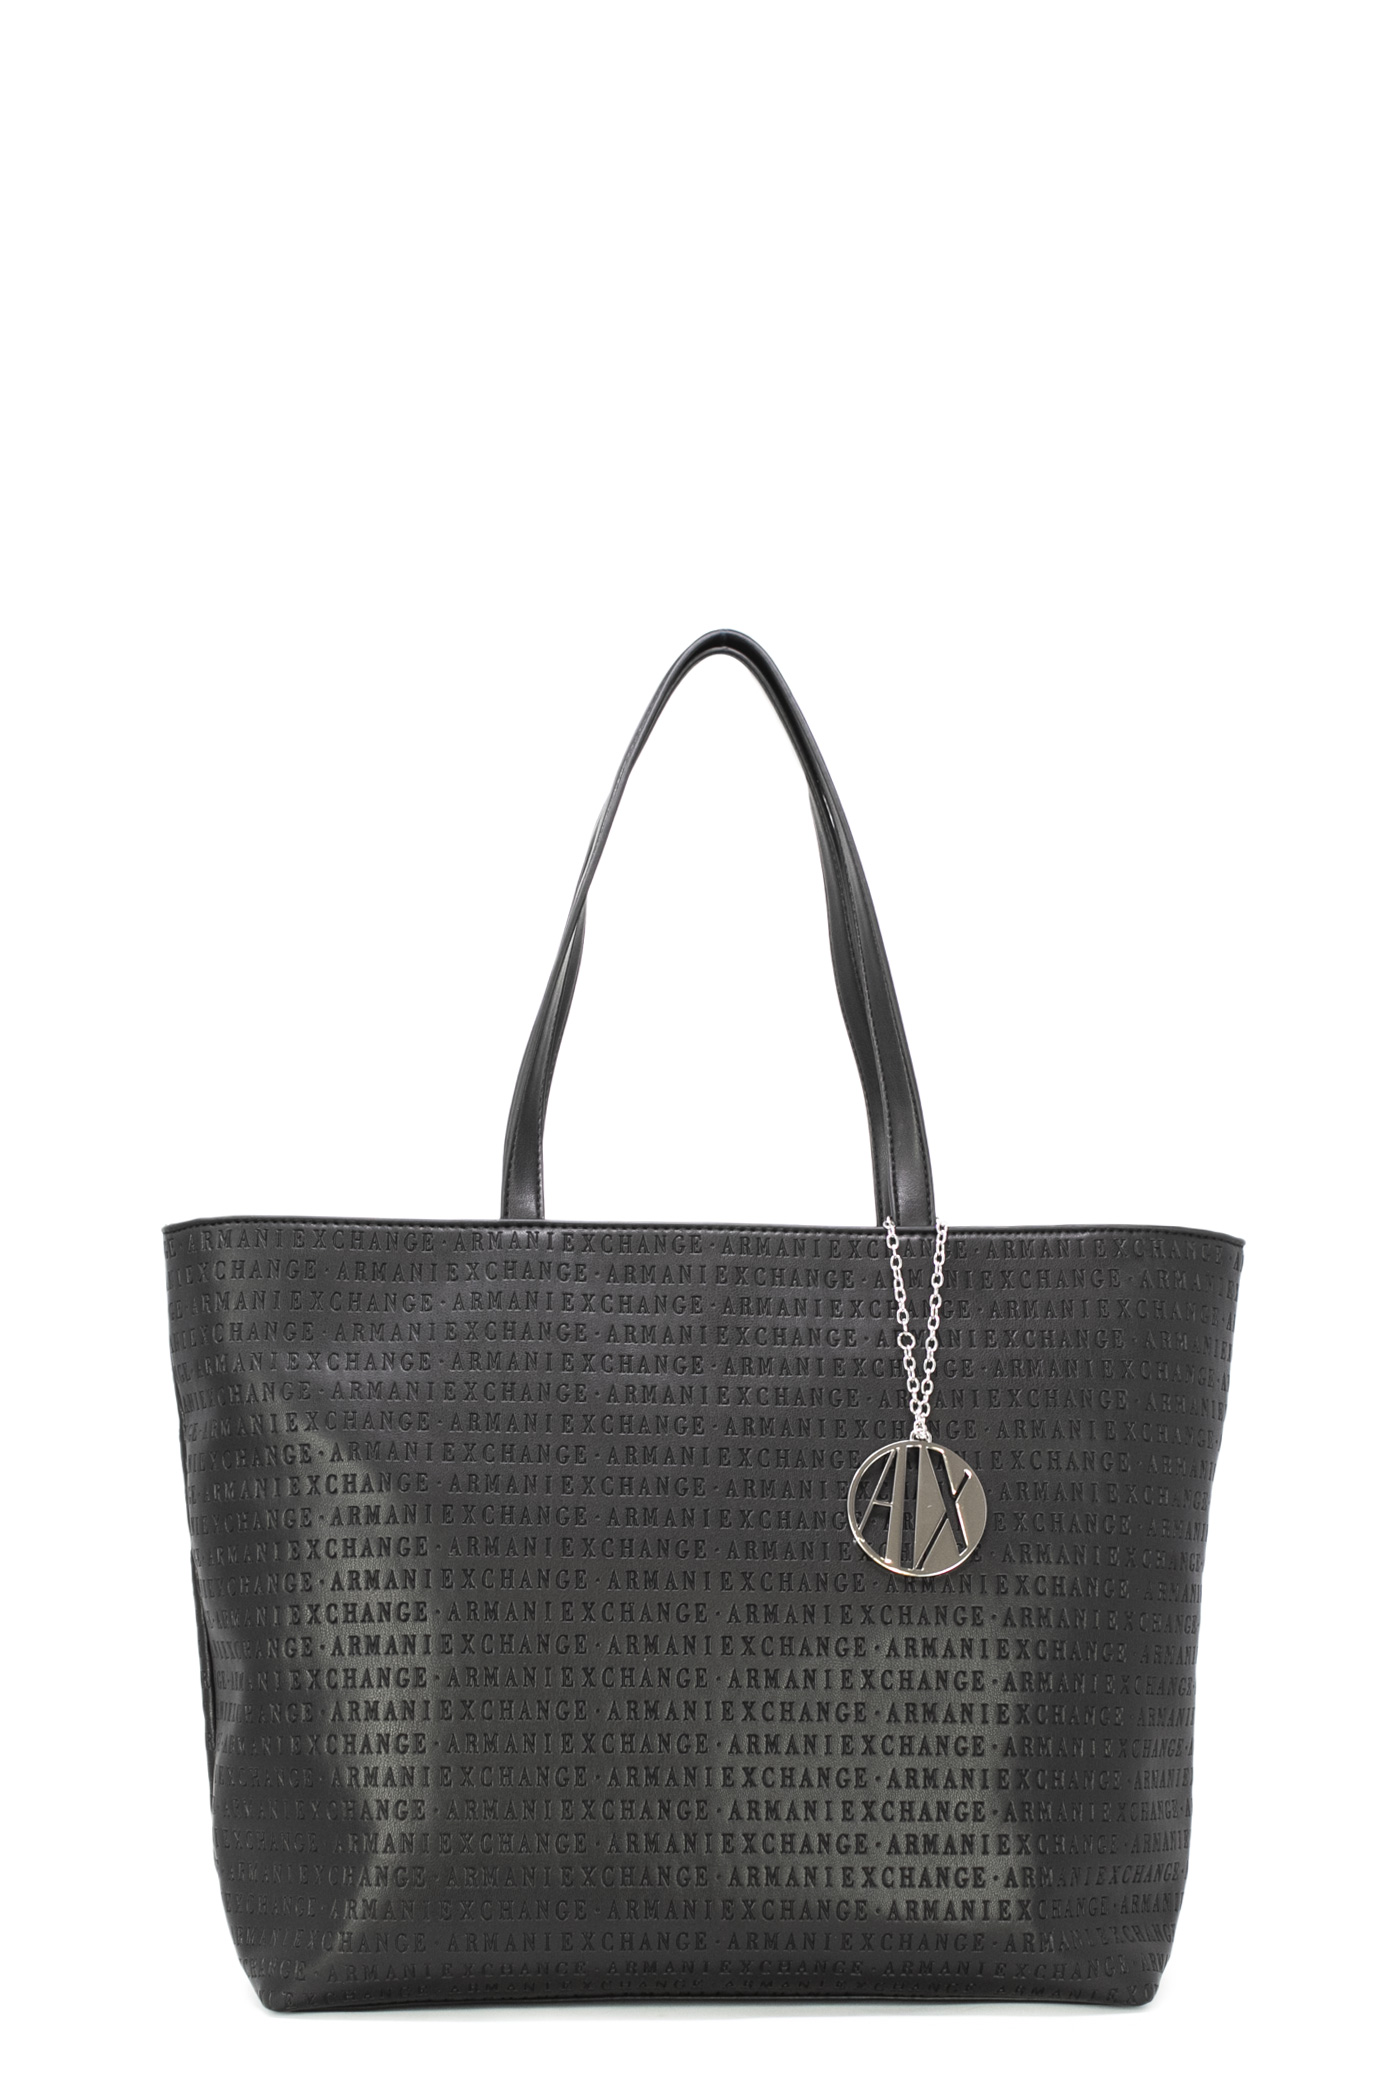 52d4ba6b1 Details about Armani exchange Zip top bag shopping bag 942426 cc714